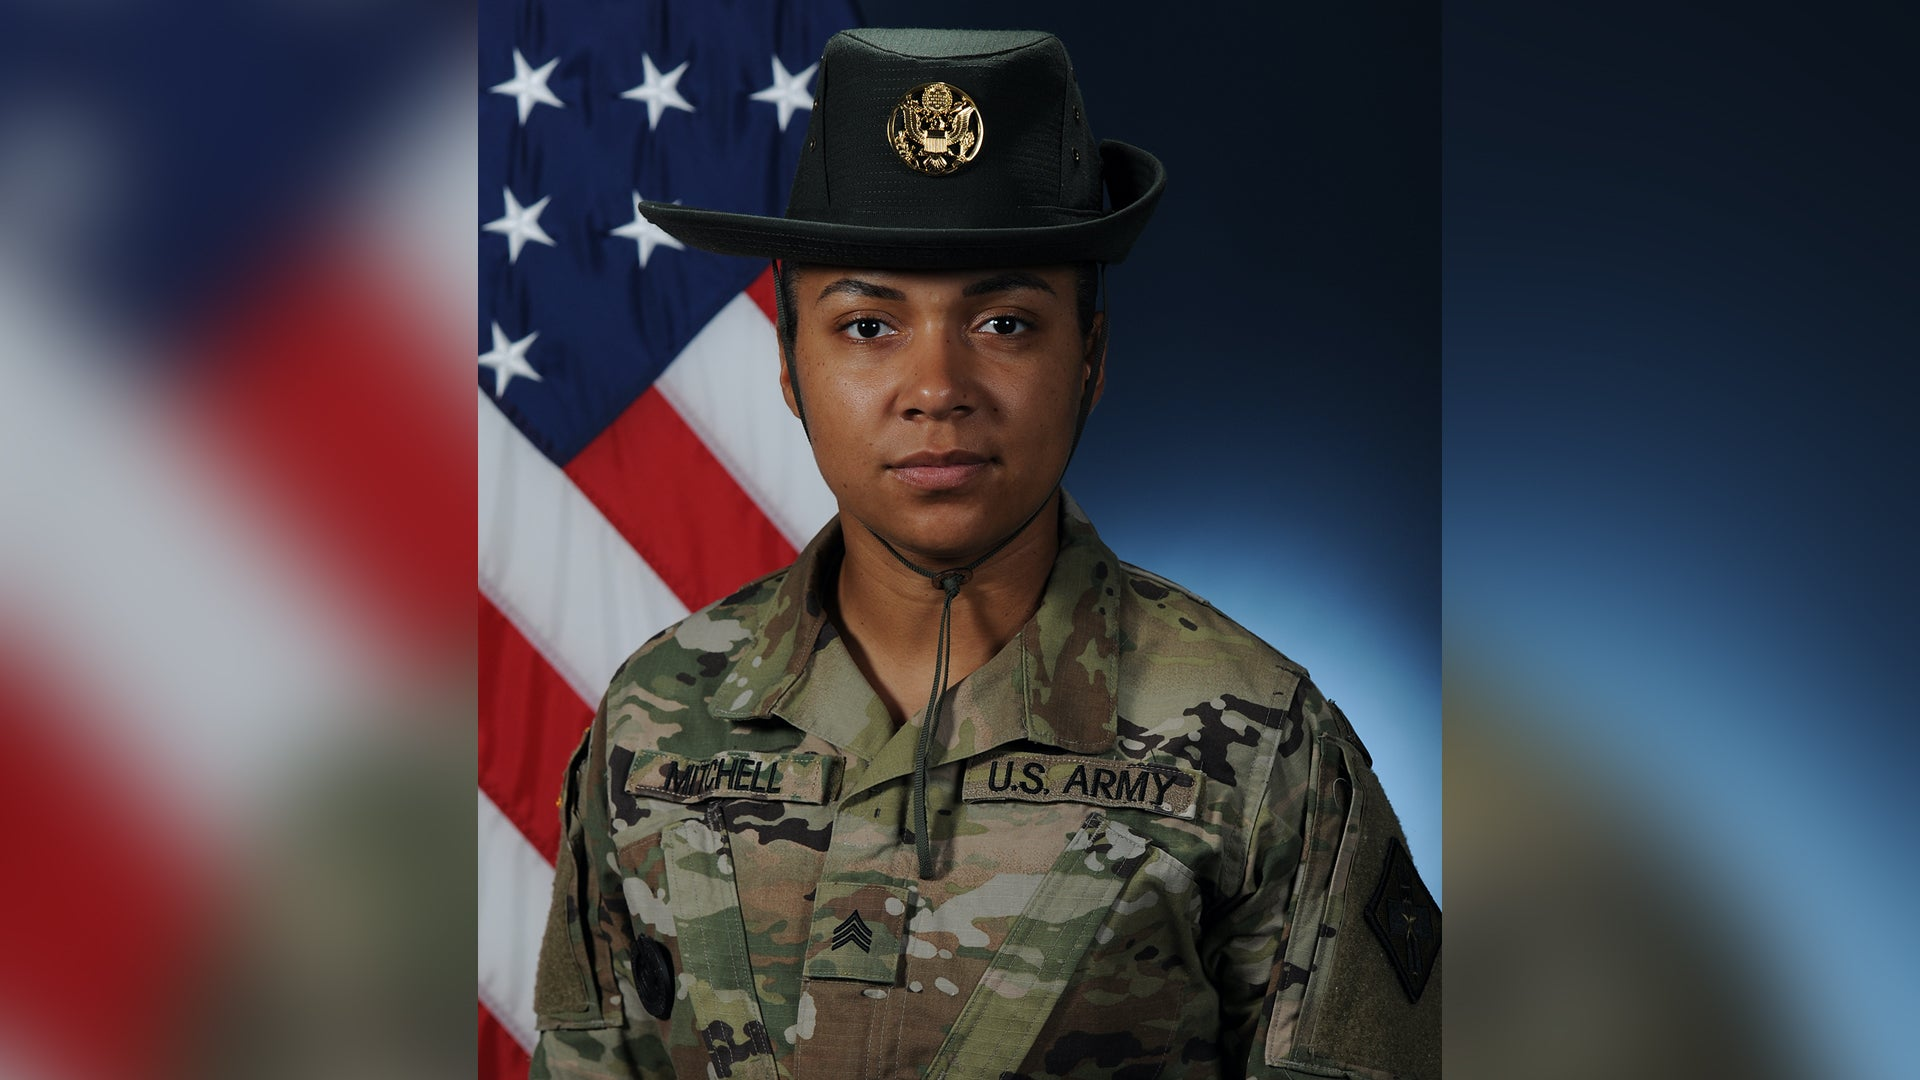 An Army drill sergeant has died after being found in her car with 'multiple gunshot wounds'